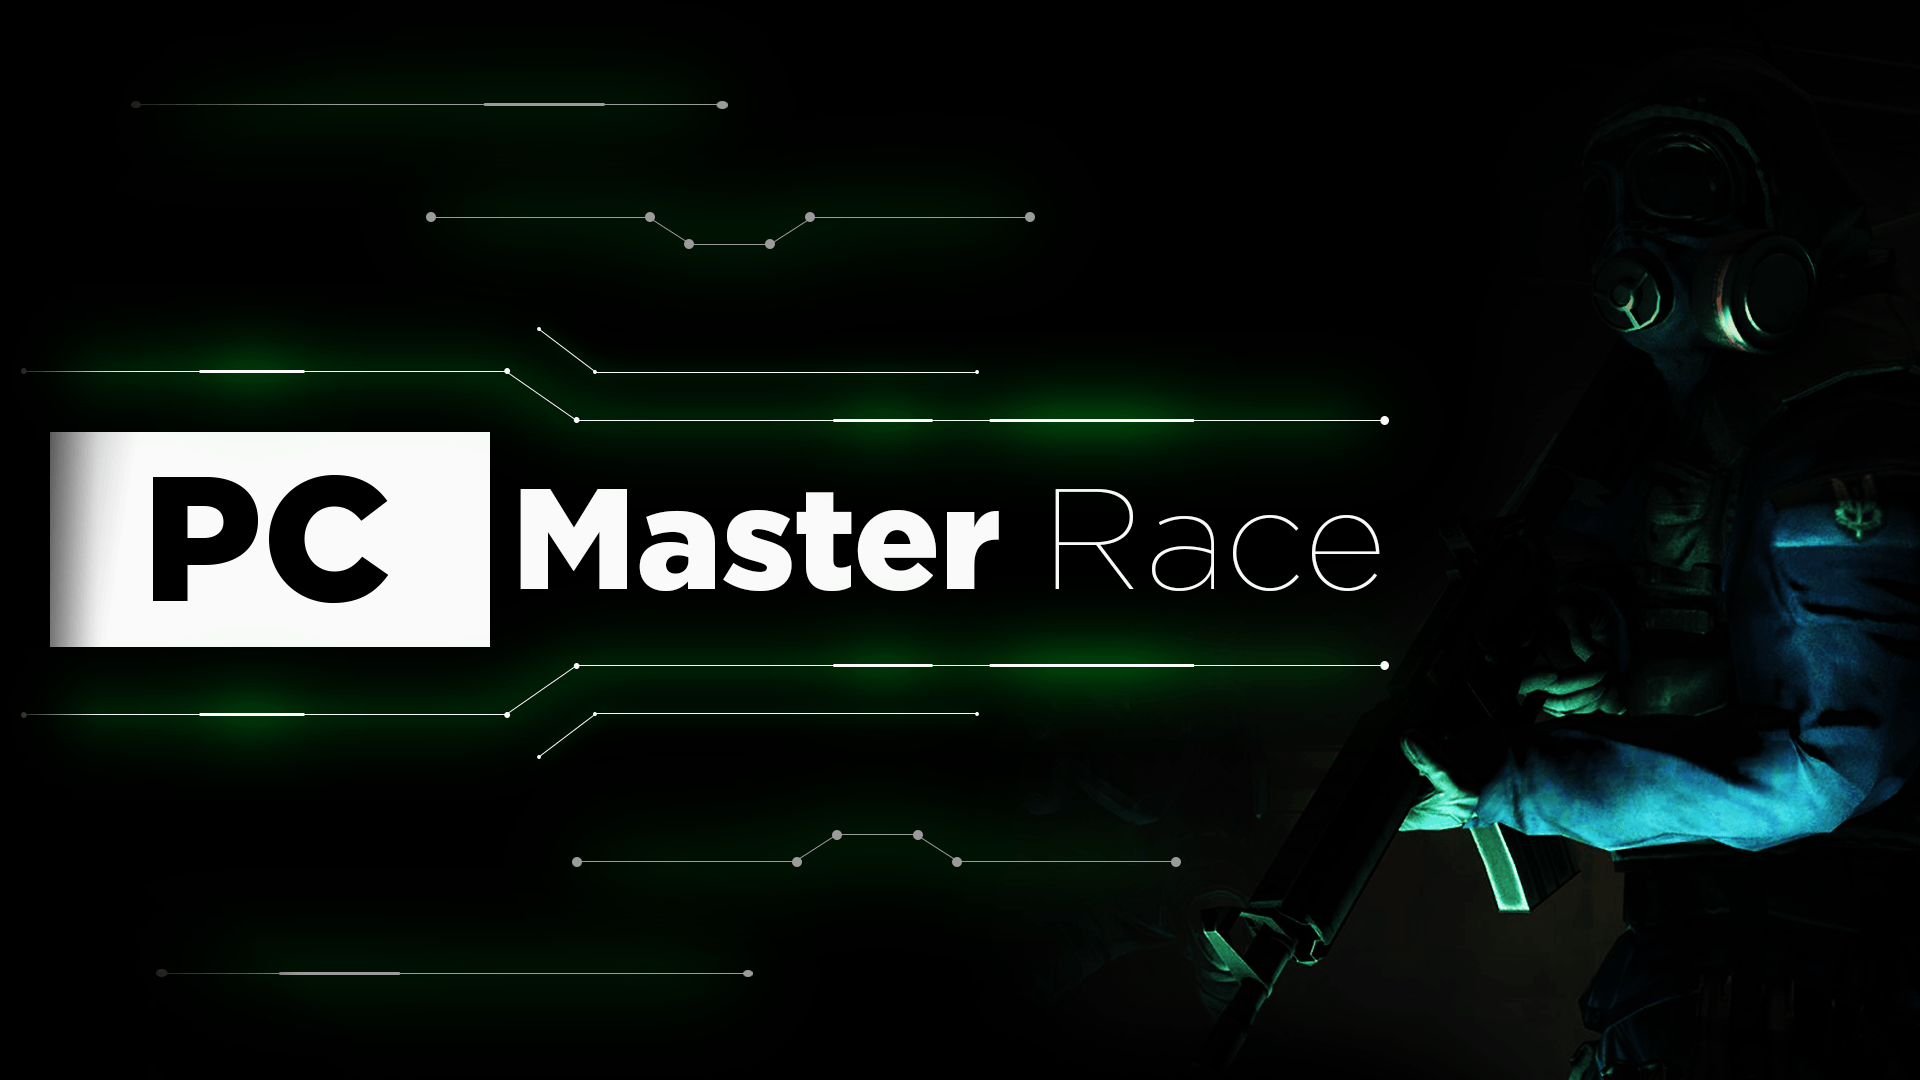 PC Master Race Wallpapers